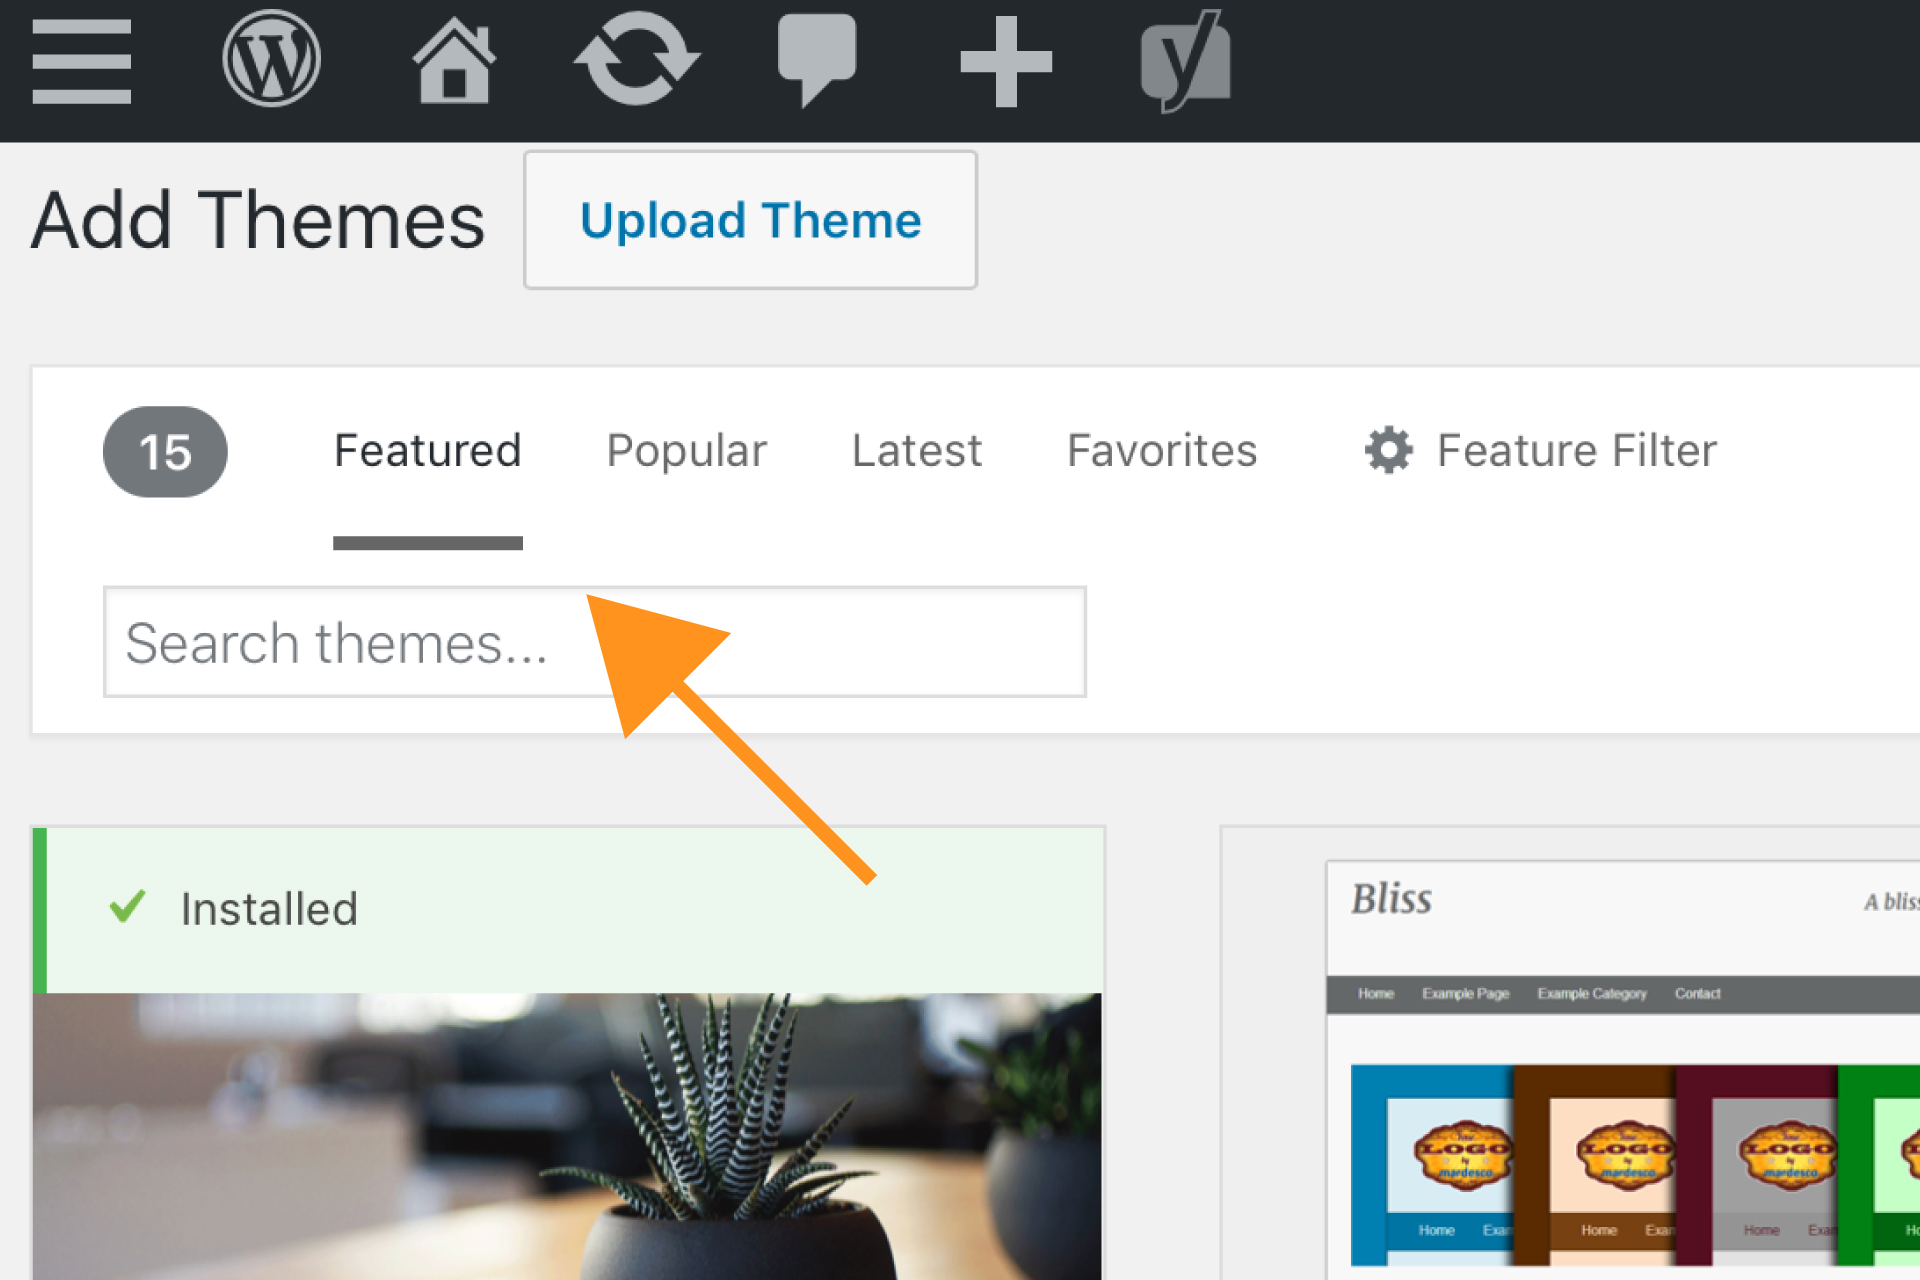 Have a new WordPress site and want to change the look? Install WordPress theme: a beginner's guide will show you how!